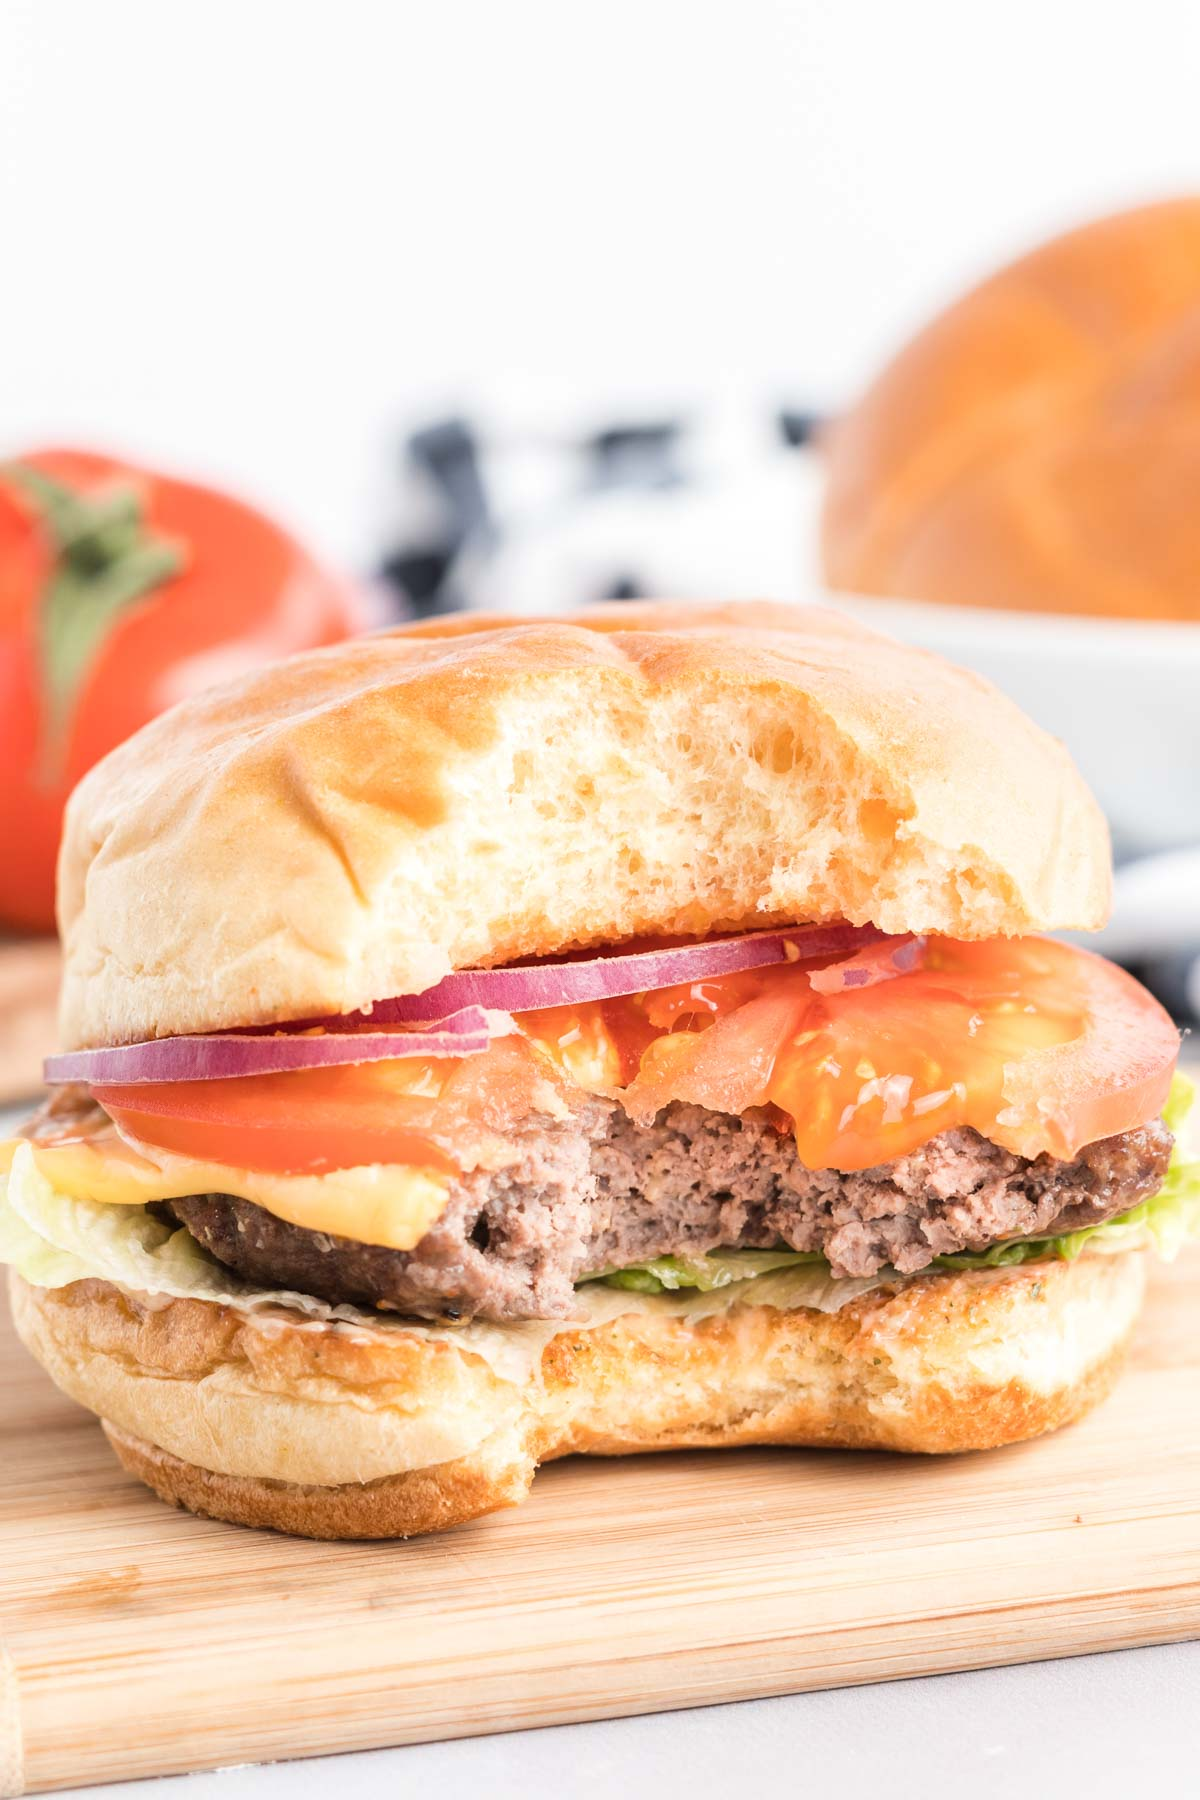 Hamburger with sauce, cheese, lettuce, tomato and onion with a bite taken out.